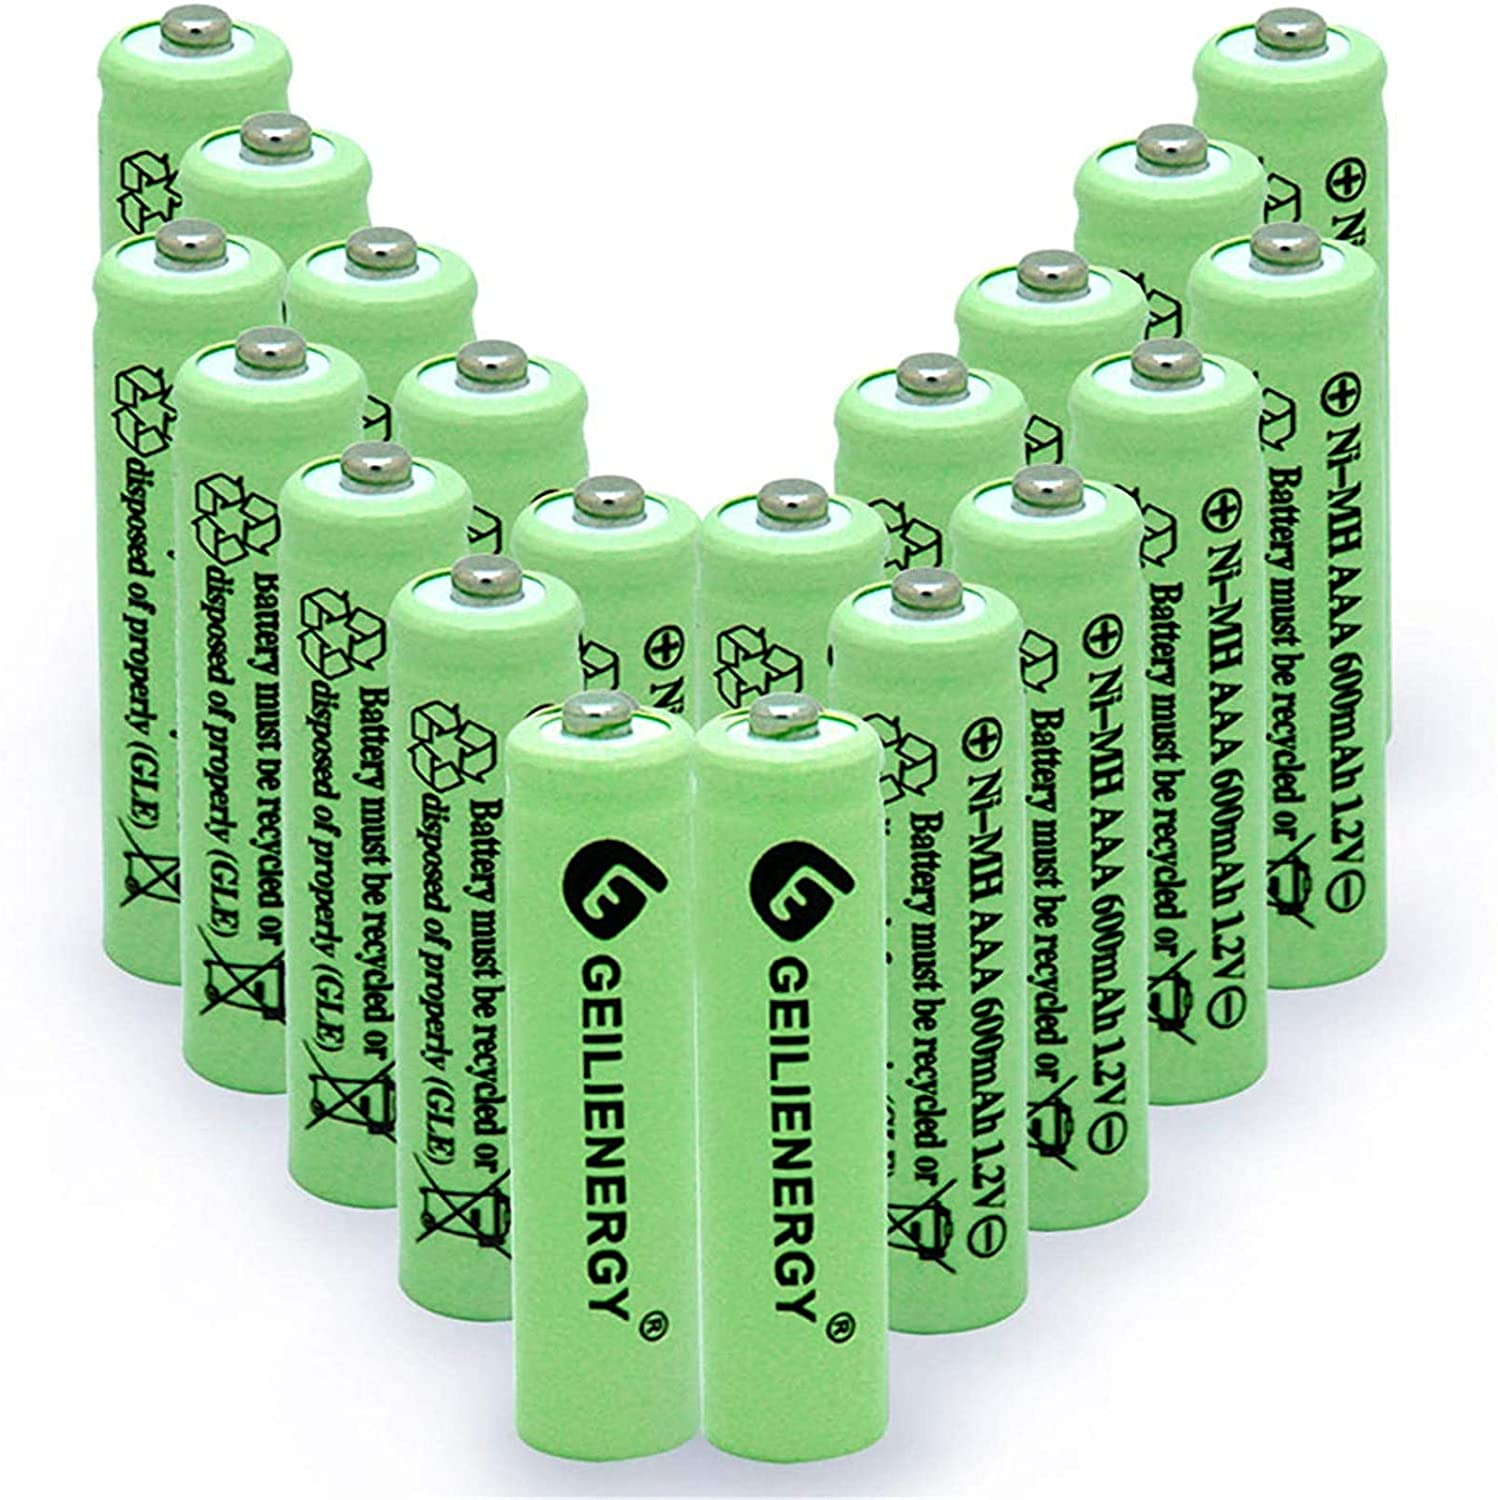 OXWINOU 1.2V AAA 600mAh NI-MH Rechargeable Battery for Outdoor Solar Lights,Garden Lights, Remotes, Mice (Green 20 PCS)